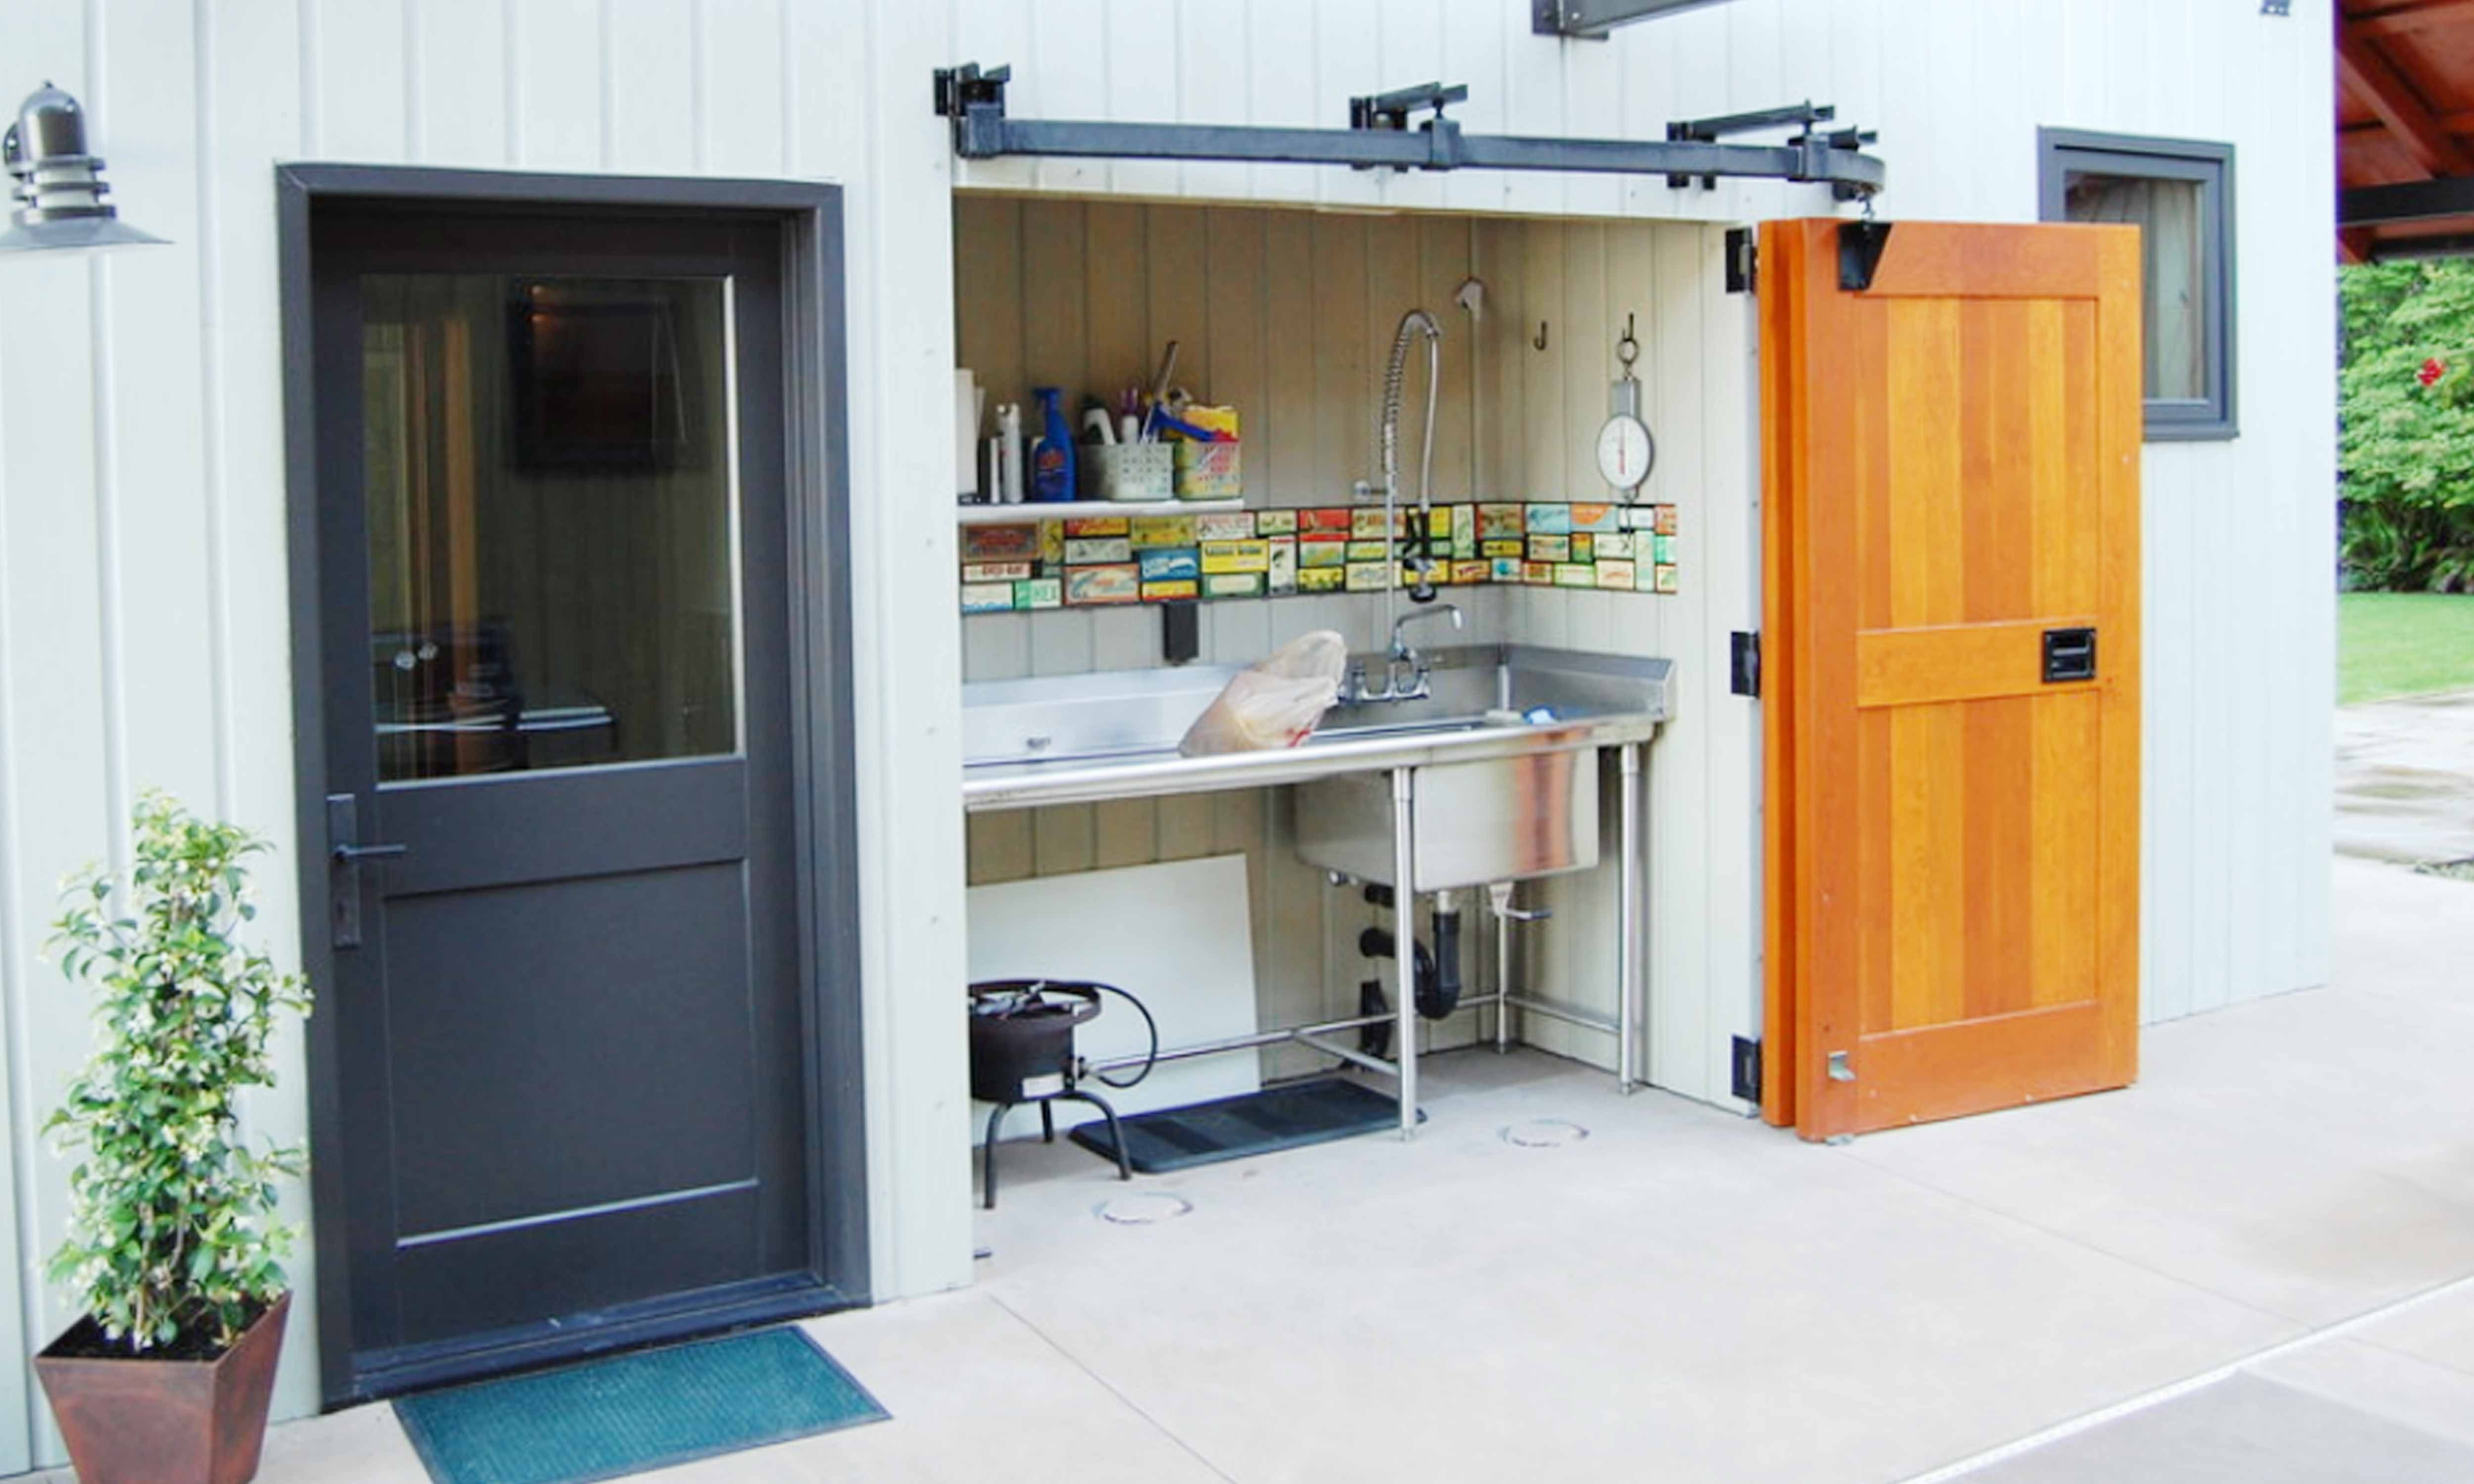 Outside Room Design Ideas Part - 35: Outdoor Laundry Room - Google Search